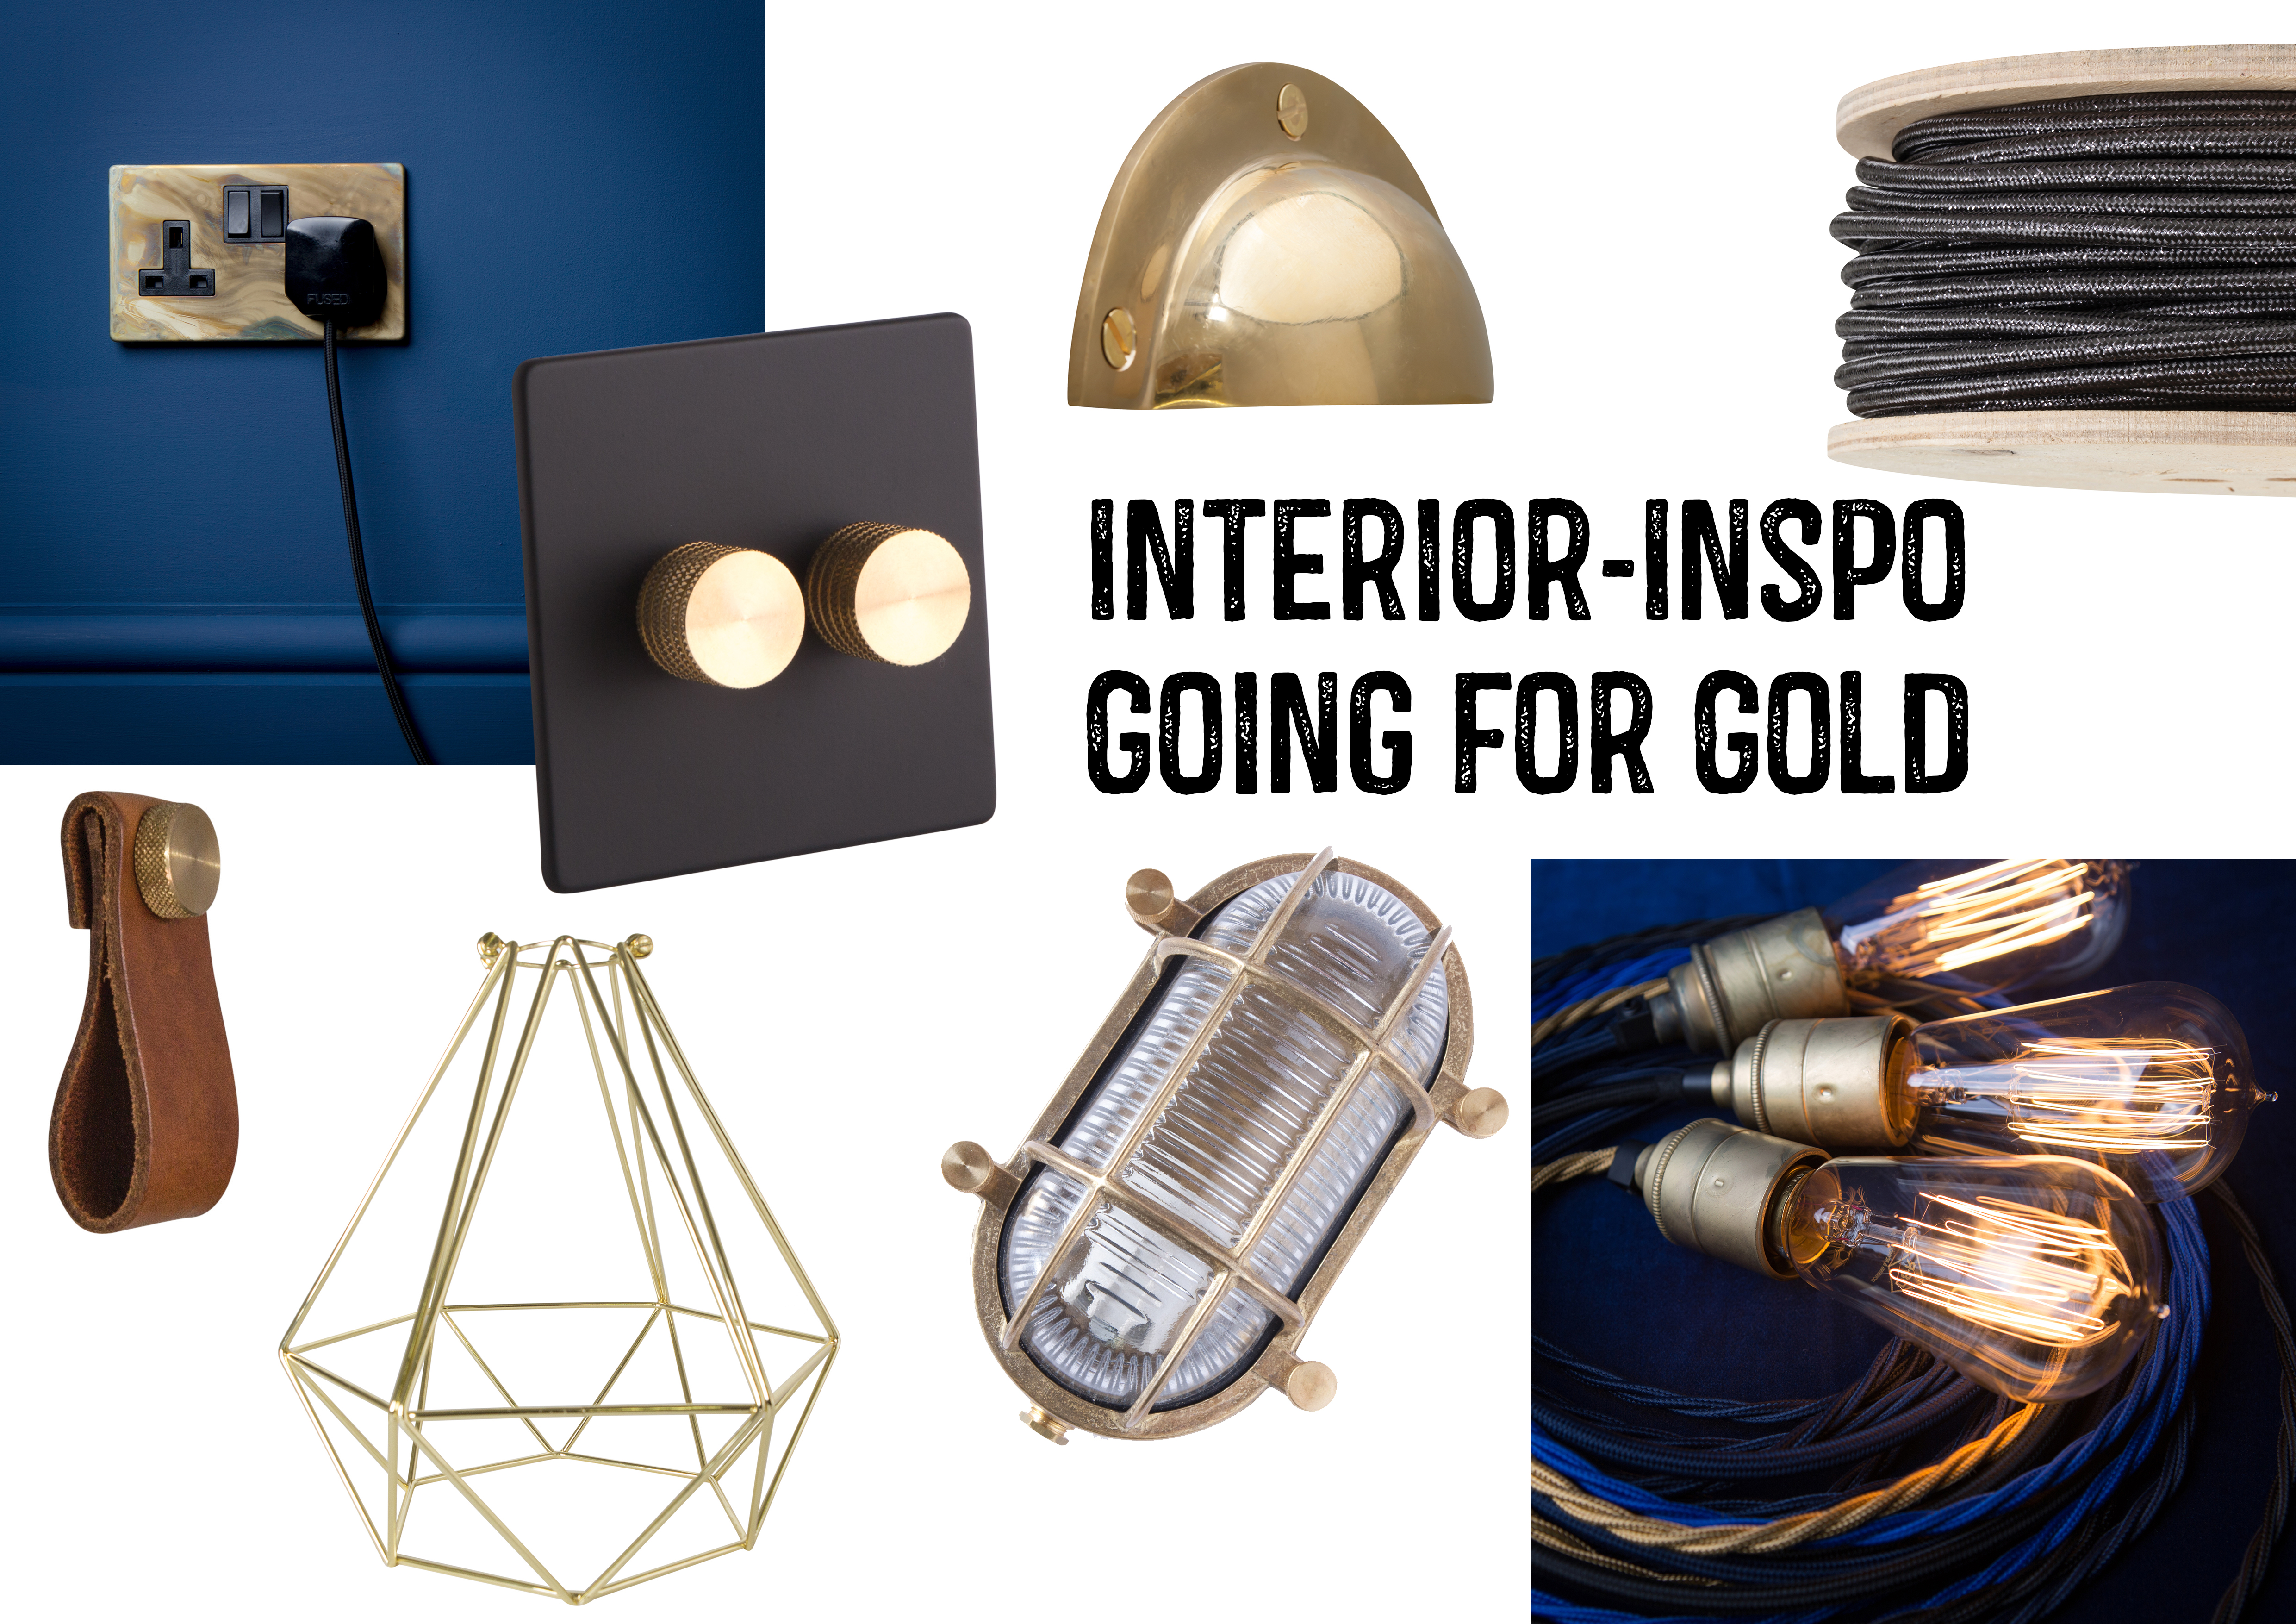 dowsing and reynolds going for gold interior inspo